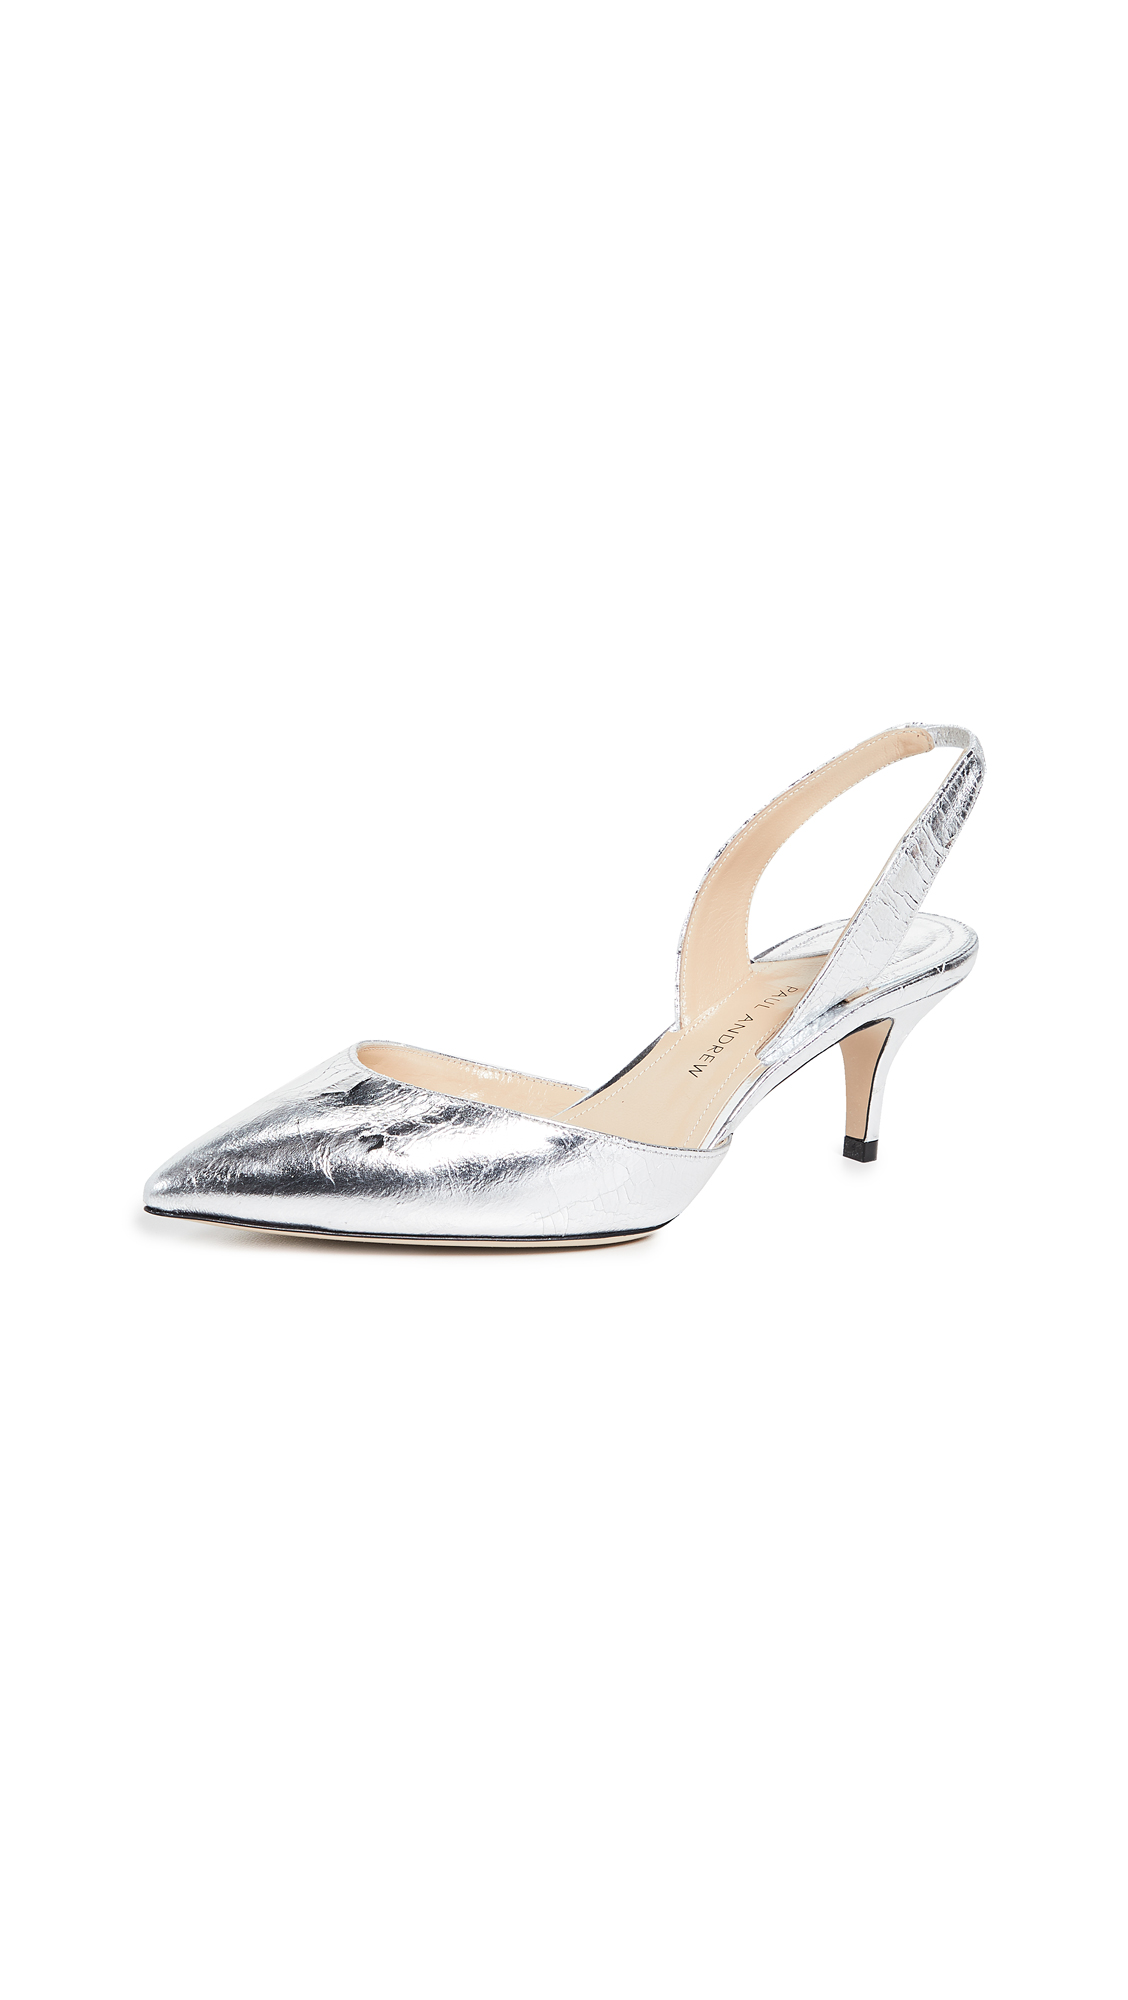 Paul Andrew Rhea 55mm Slingback Pumps - Silver